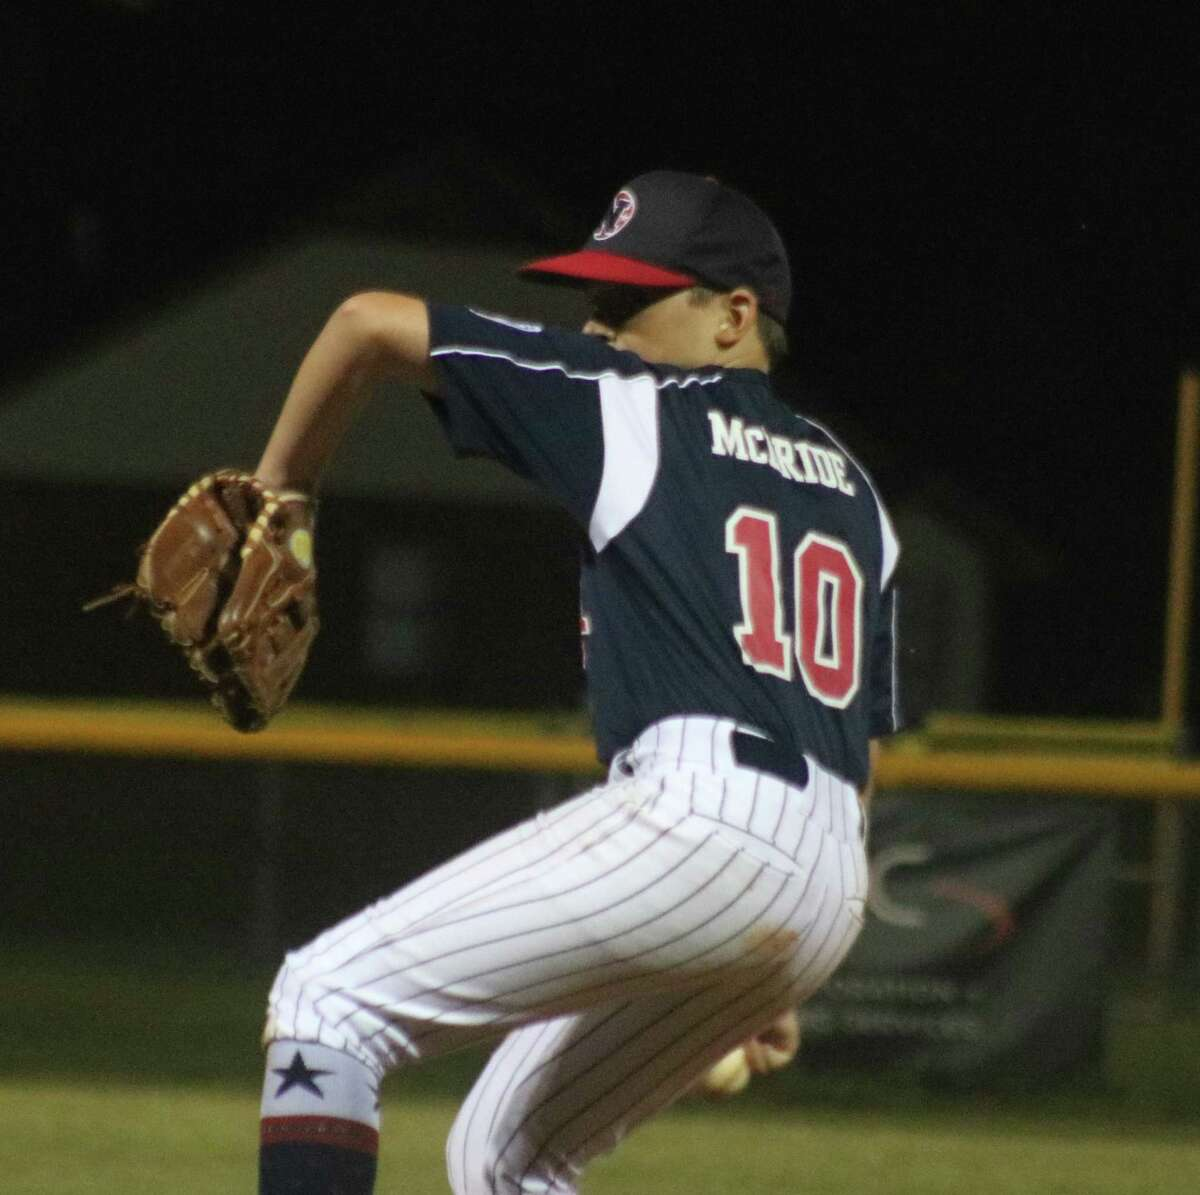 Jacob McBride goes through his wind-up Monday night. Although he received a no-decision, he surrendered just one run during his long stint on the hill.